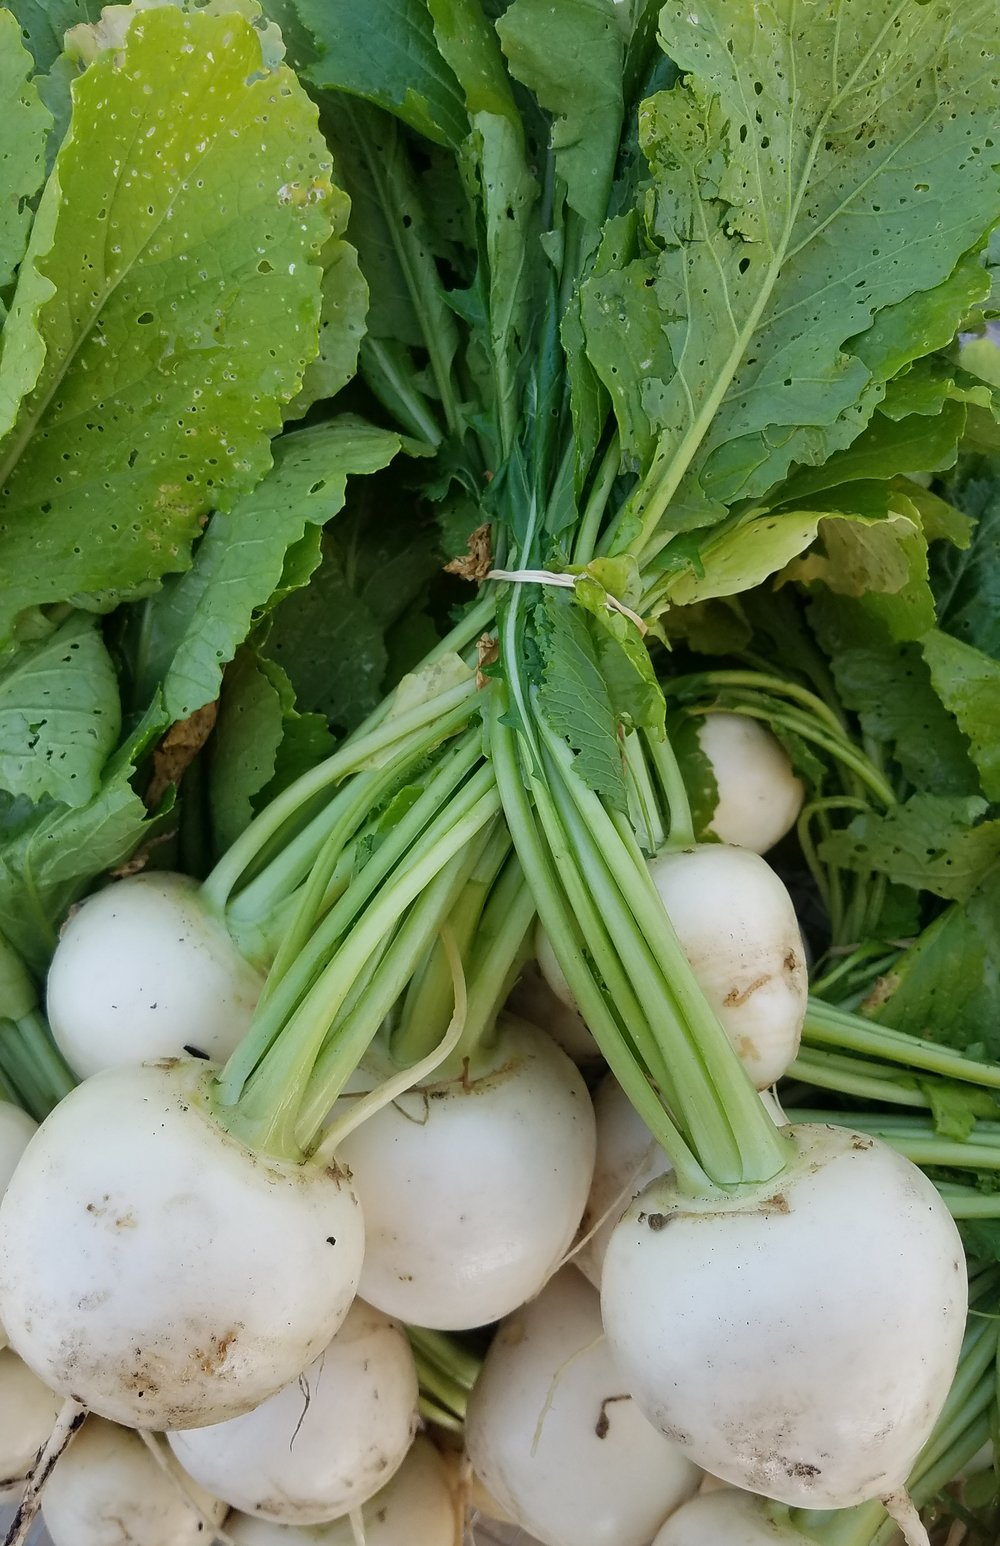 Turnips - Mild tasting turnips are great raw in salads or thrown into your next soup. Try them roasted, buttered, or mashed.